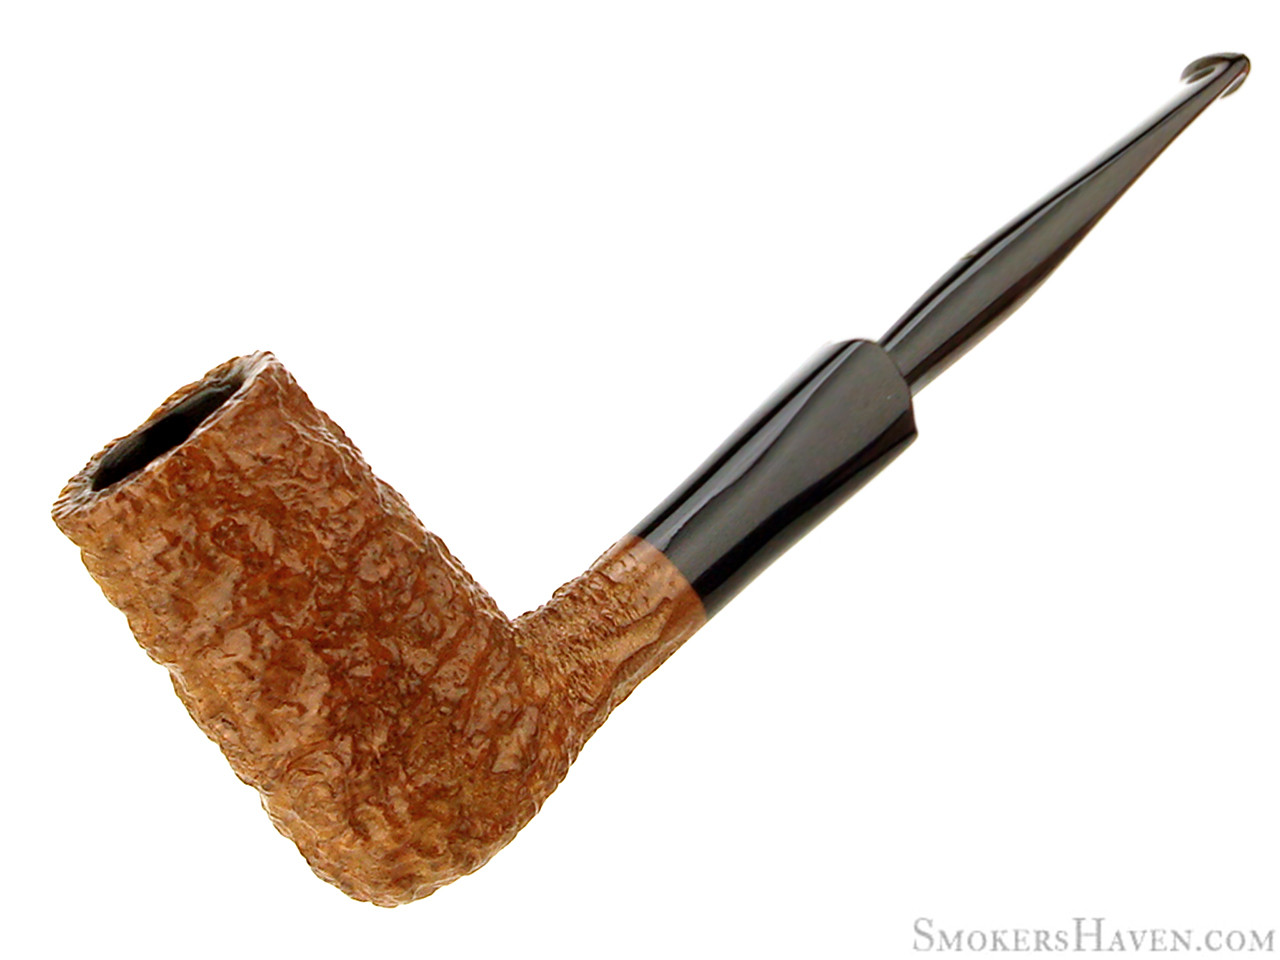 Caminetto pipe dating website